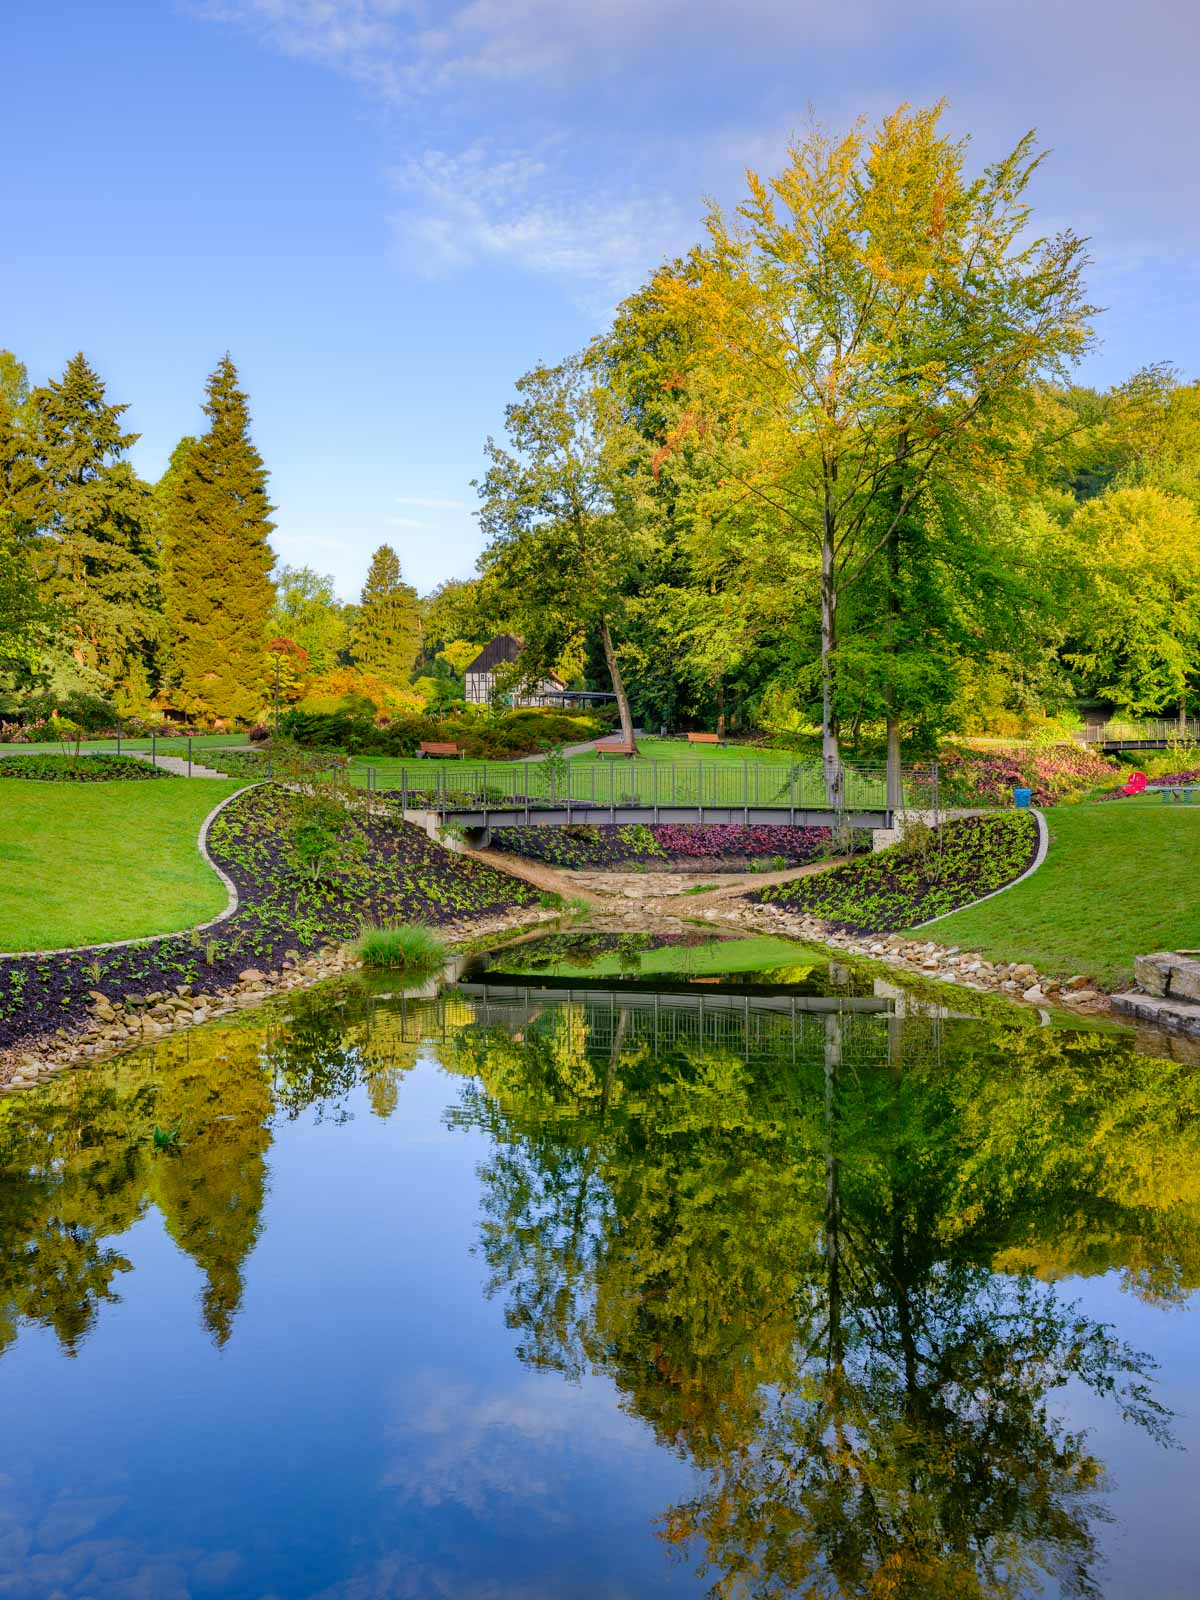 Botanical Garden Bielefeld early in the morning on 9 September 2020 (Germany).